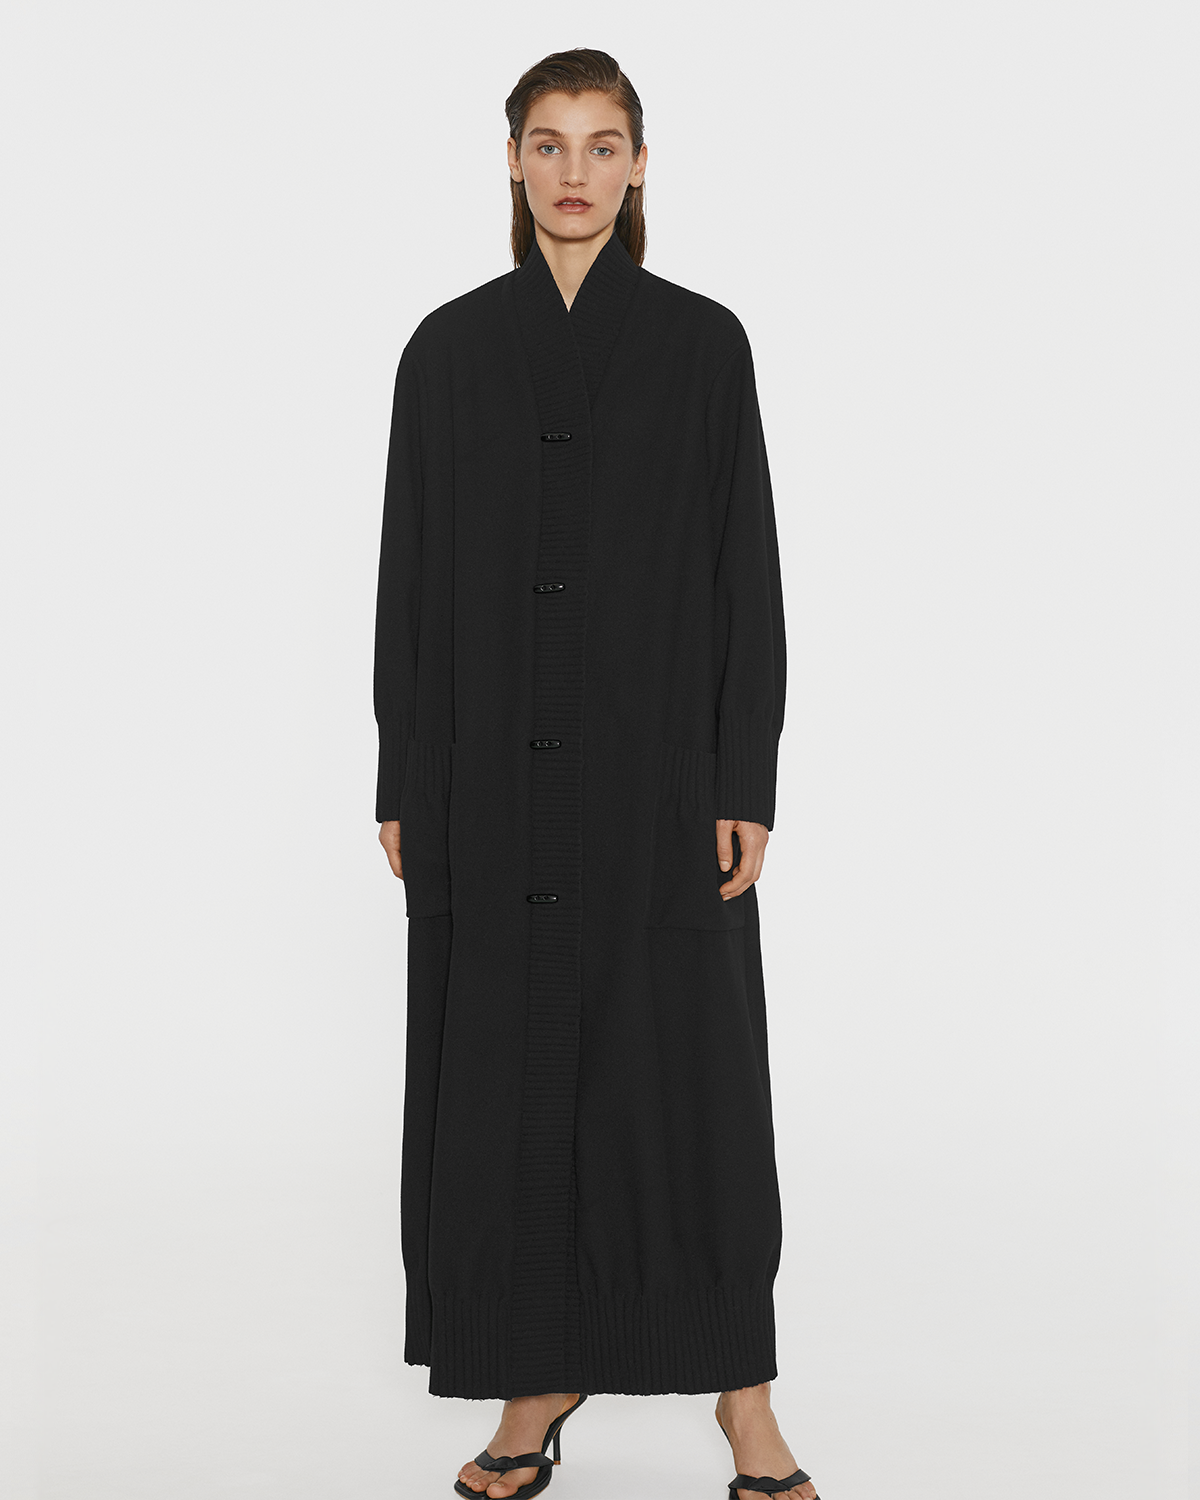 Oversized robe coat